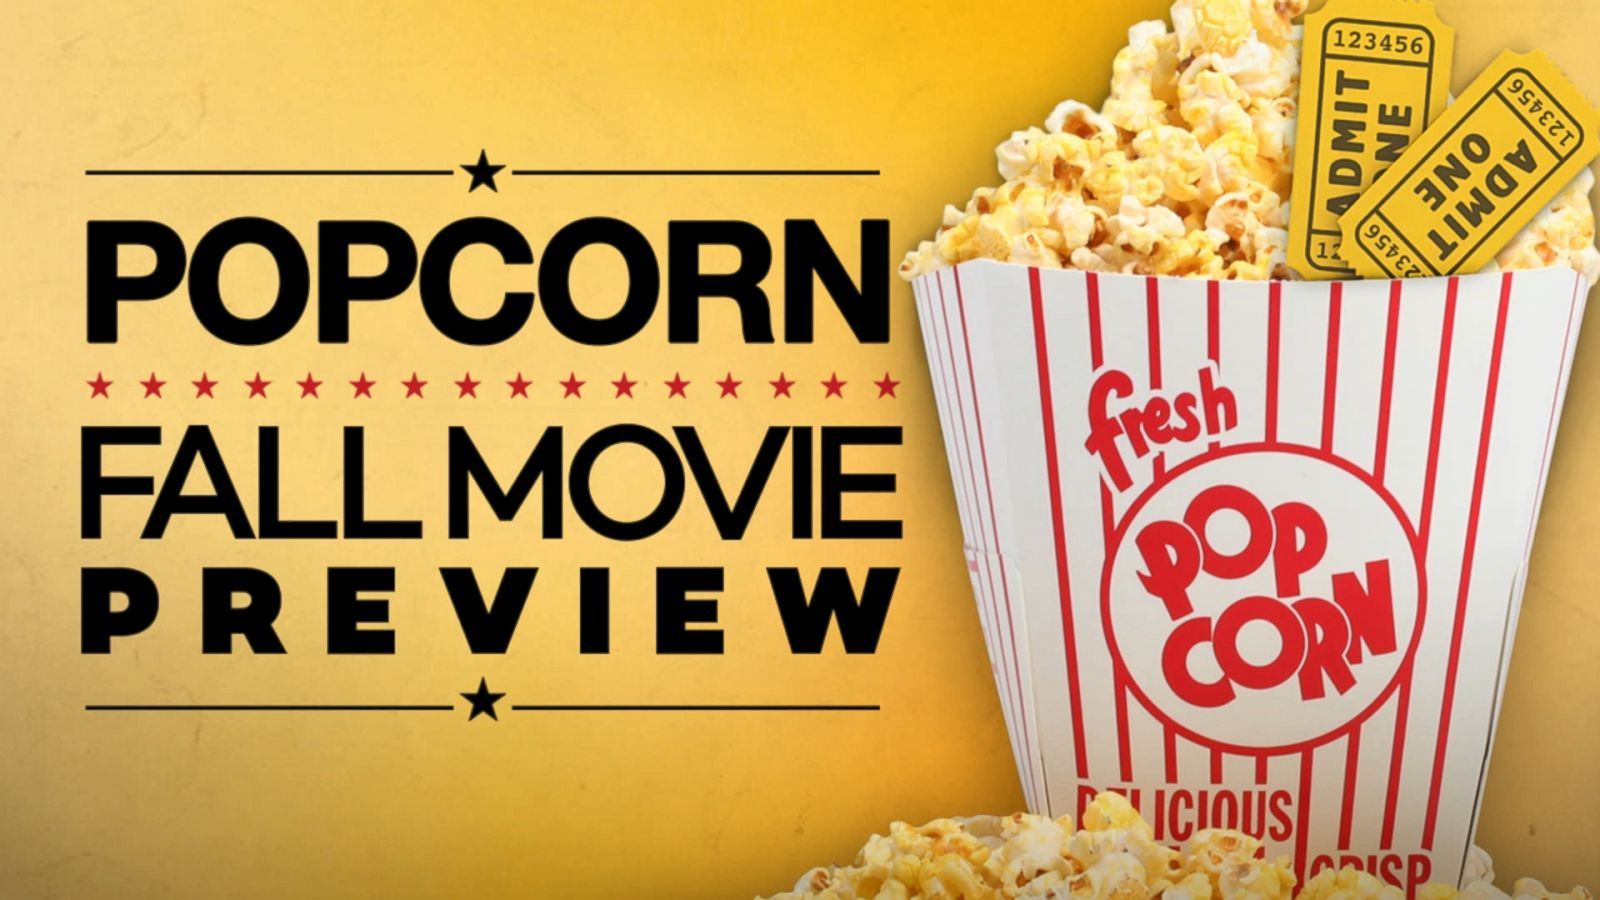 VIDEO: Fall Movie Preview: Peter Travers Names His Must-See Films